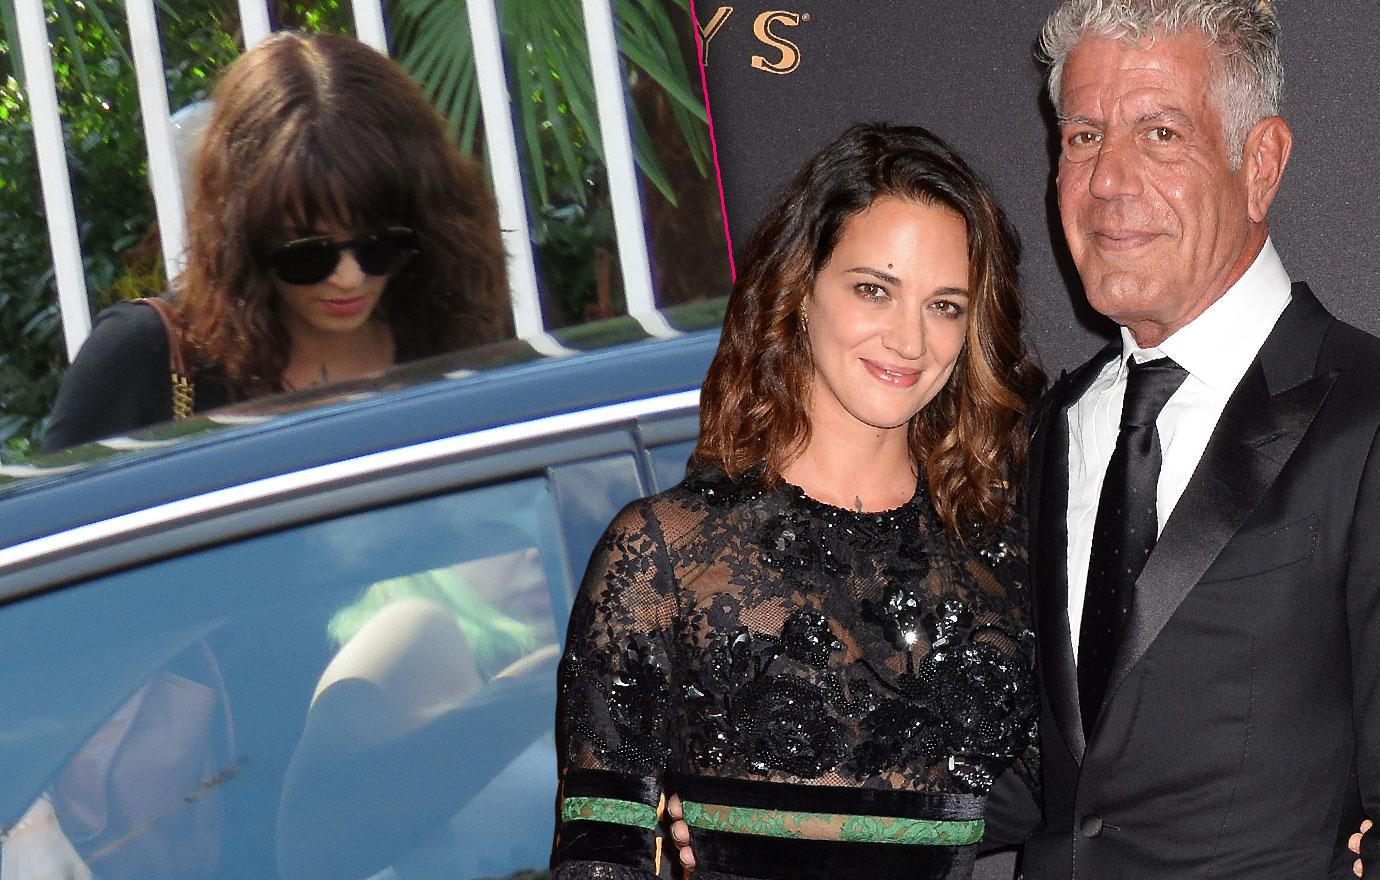 Asia Argento Leaves Rome For Anthony Bourdain Funeral